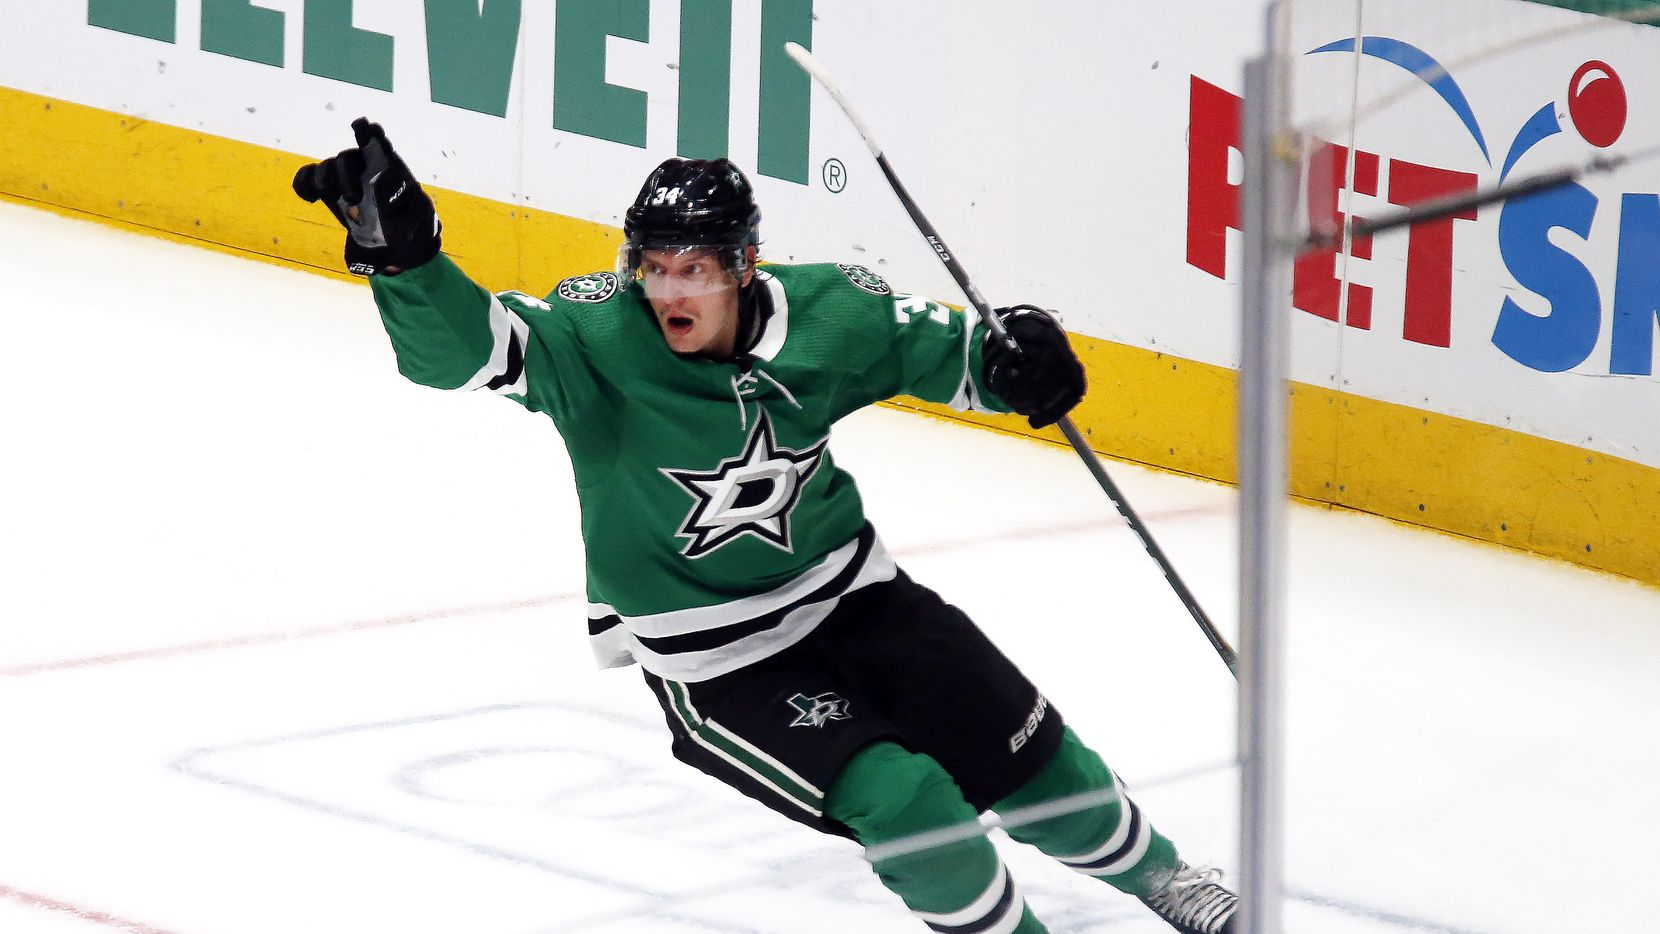 Dallas Stars right wing Denis Gurianov celebrates his goal during the second period against the Tampa Bay Lightning of an NHL hockey game in Dallas, Monday, Jan. 27, 2020.